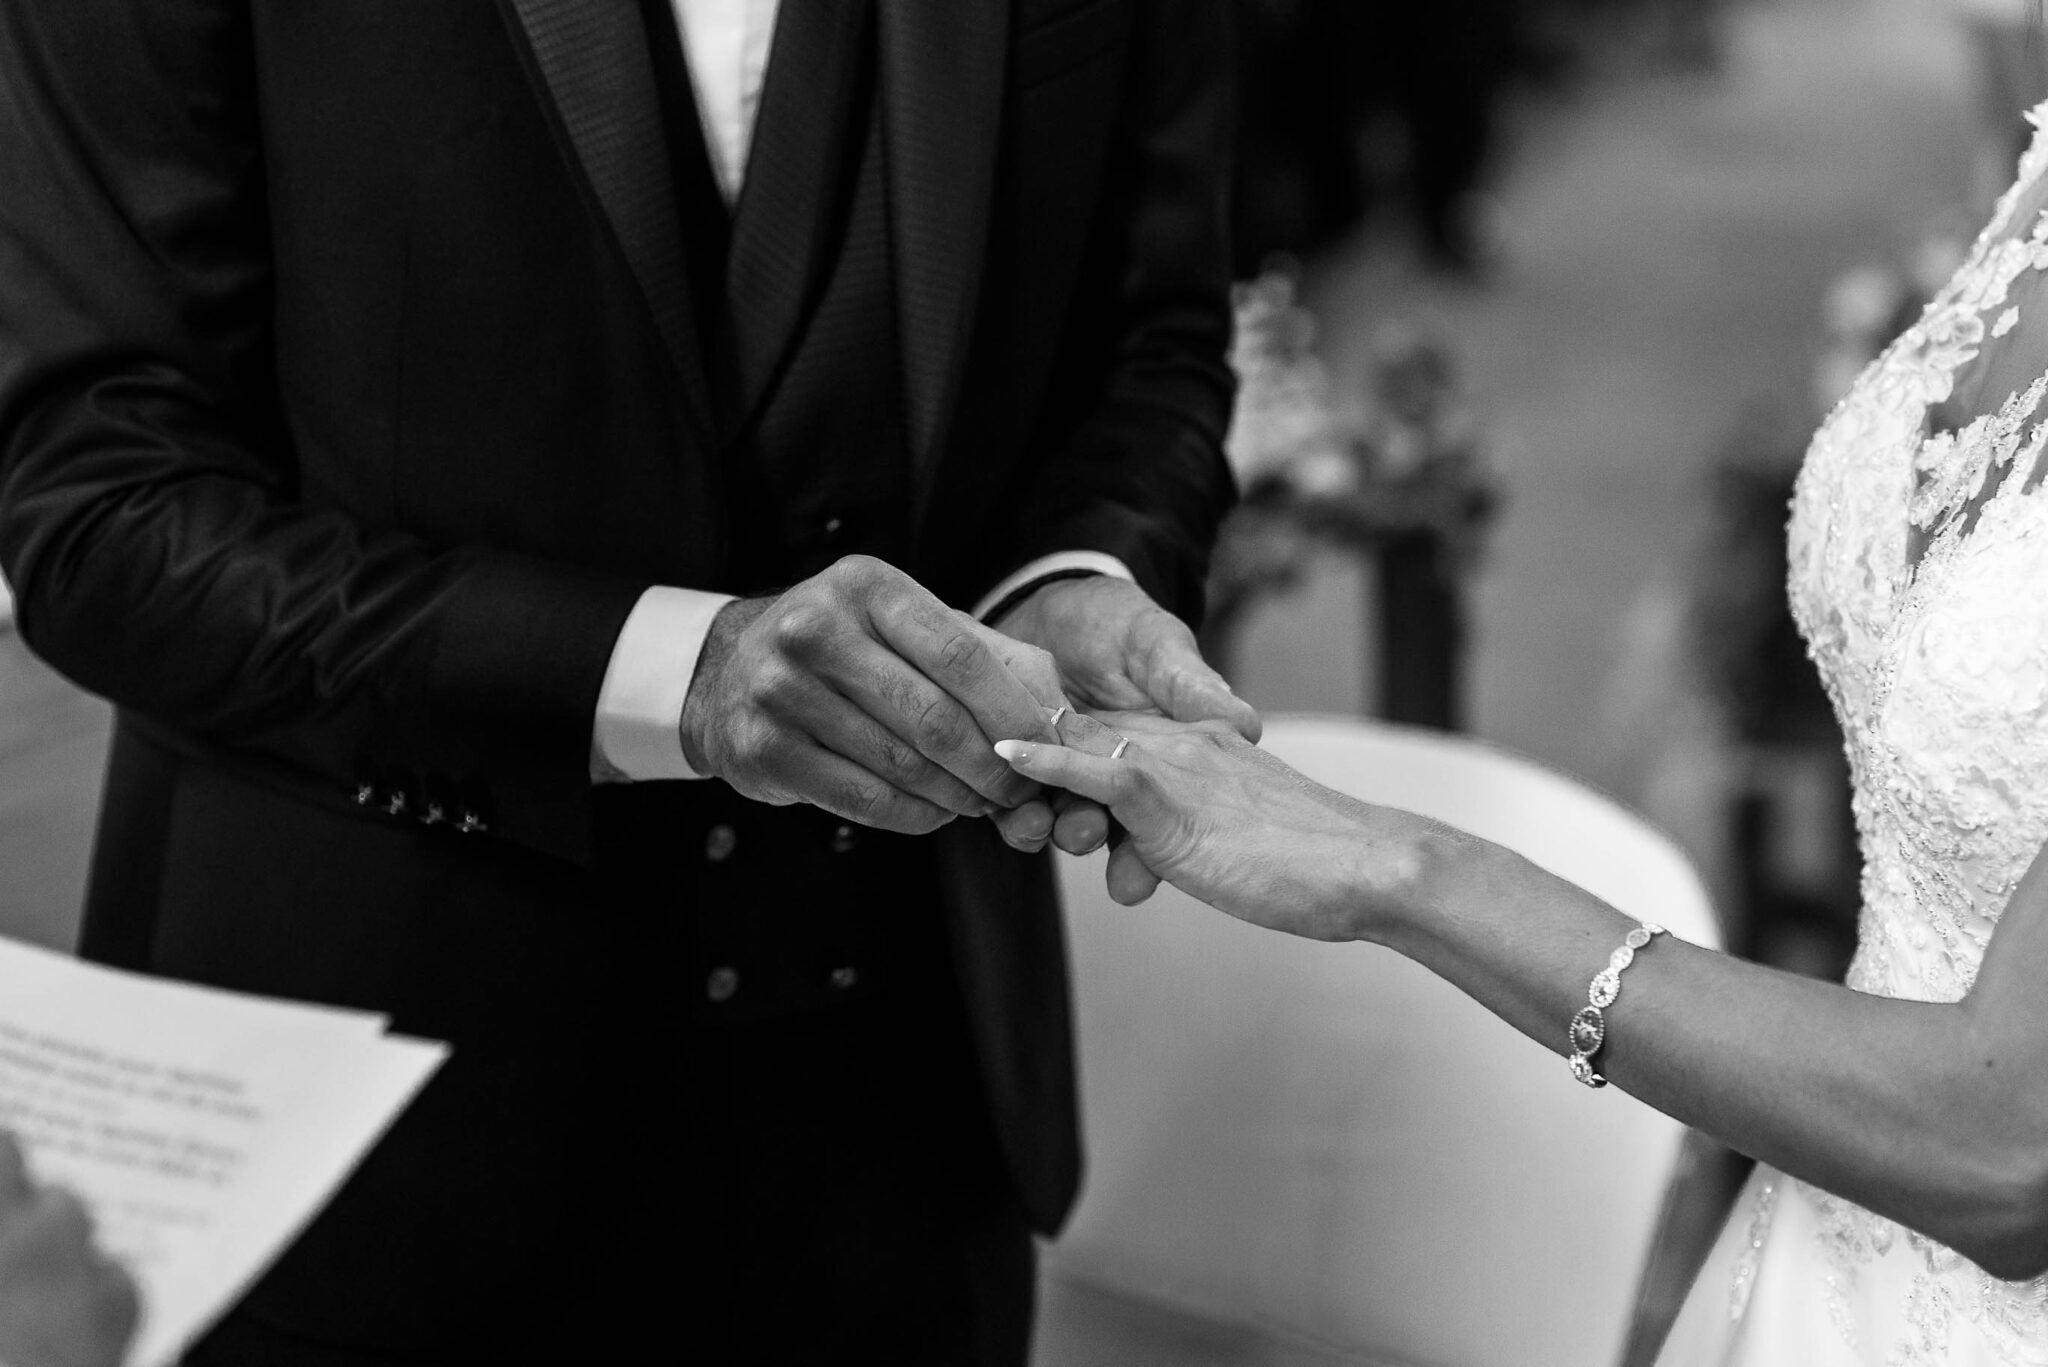 The bride and groom exchanging the wedding ring